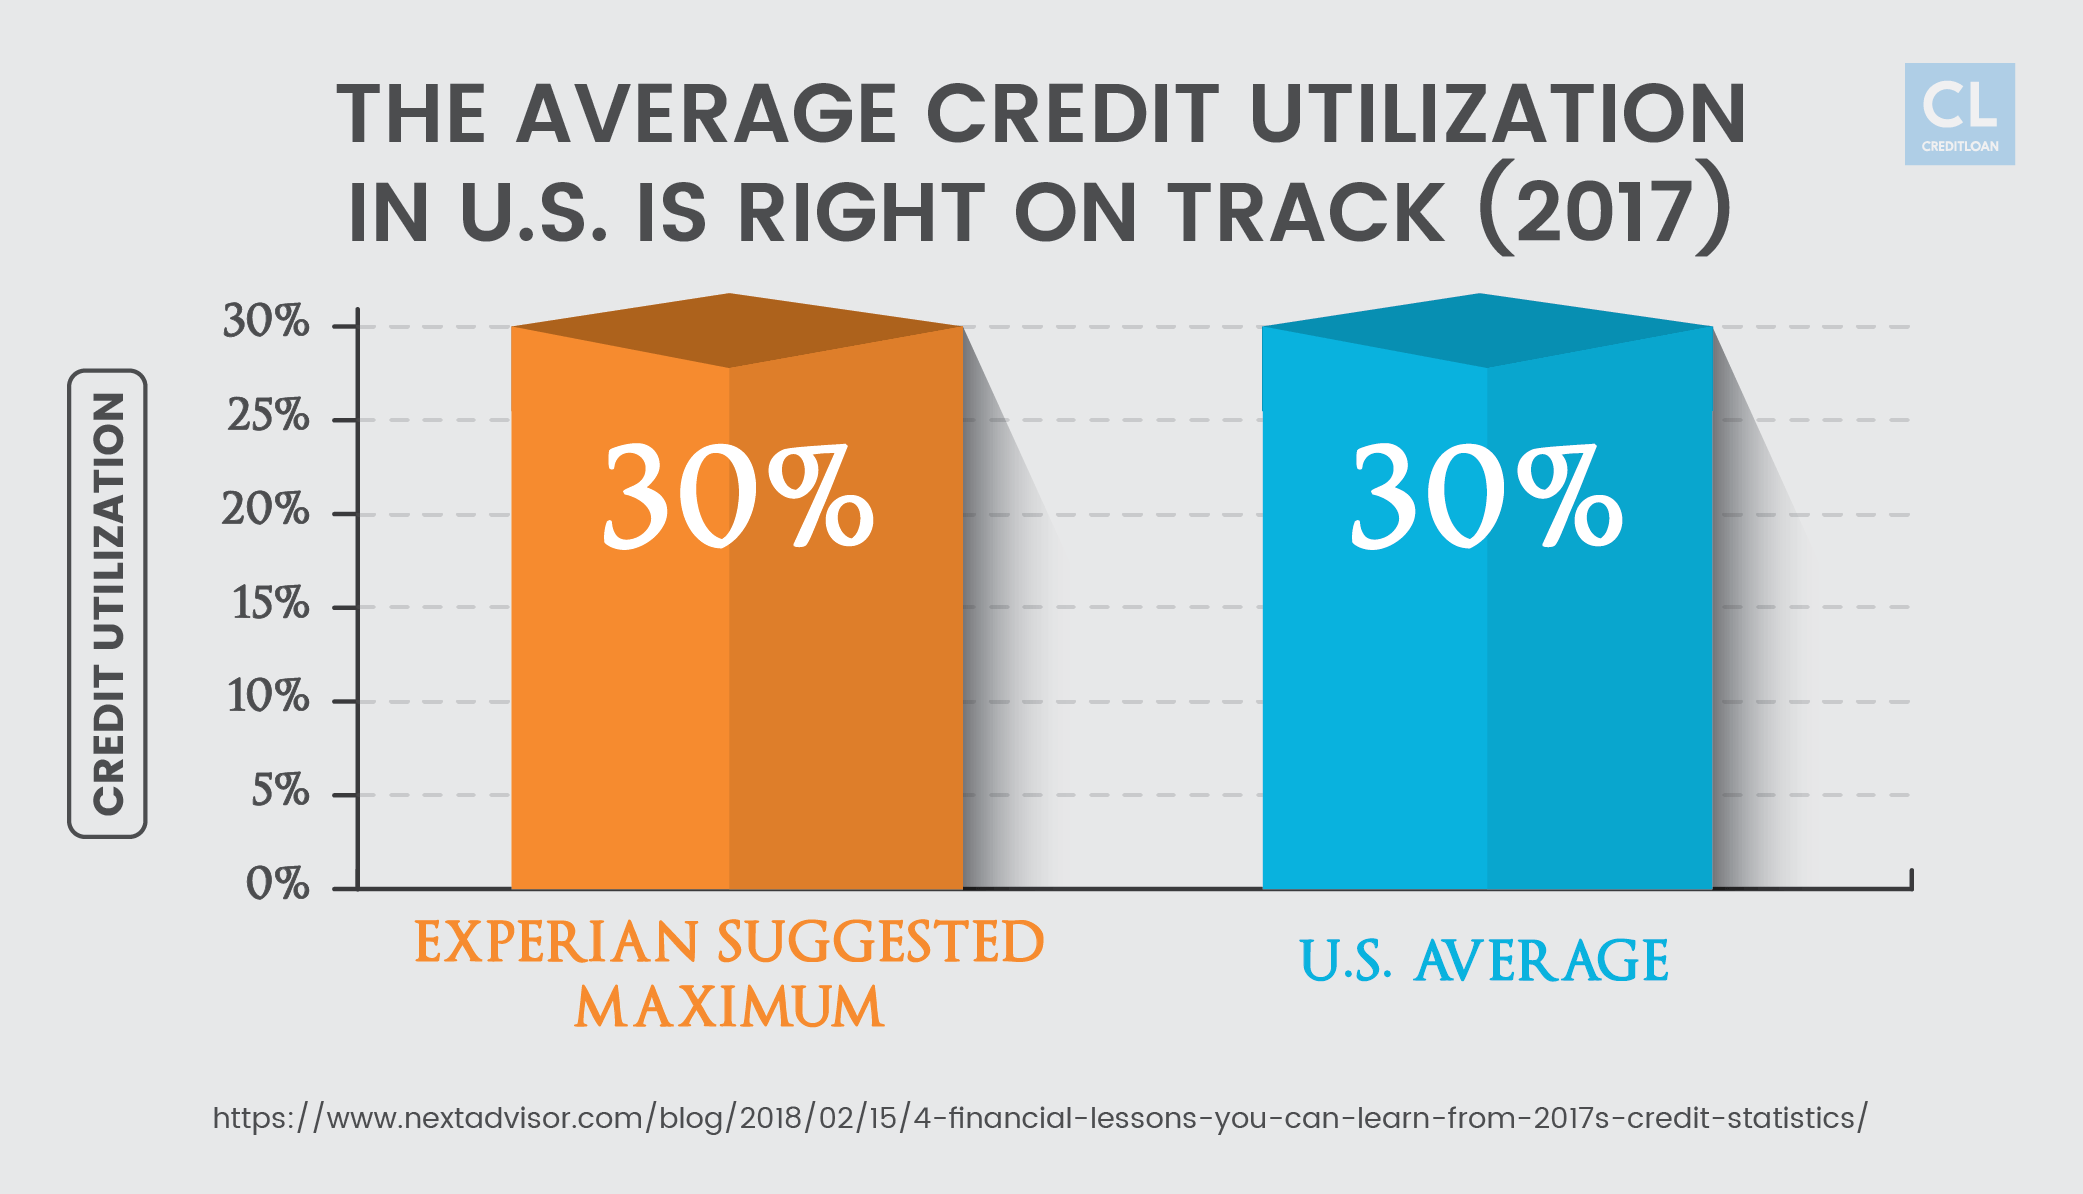 2017 U.S. Credit Utilization is Right on Track